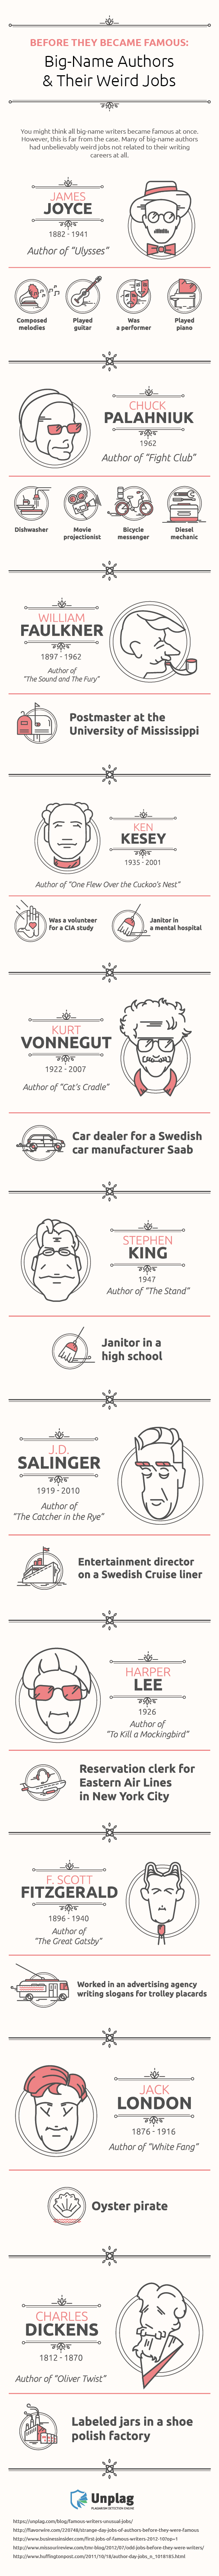 Unusual Jobs Of Famous Writers